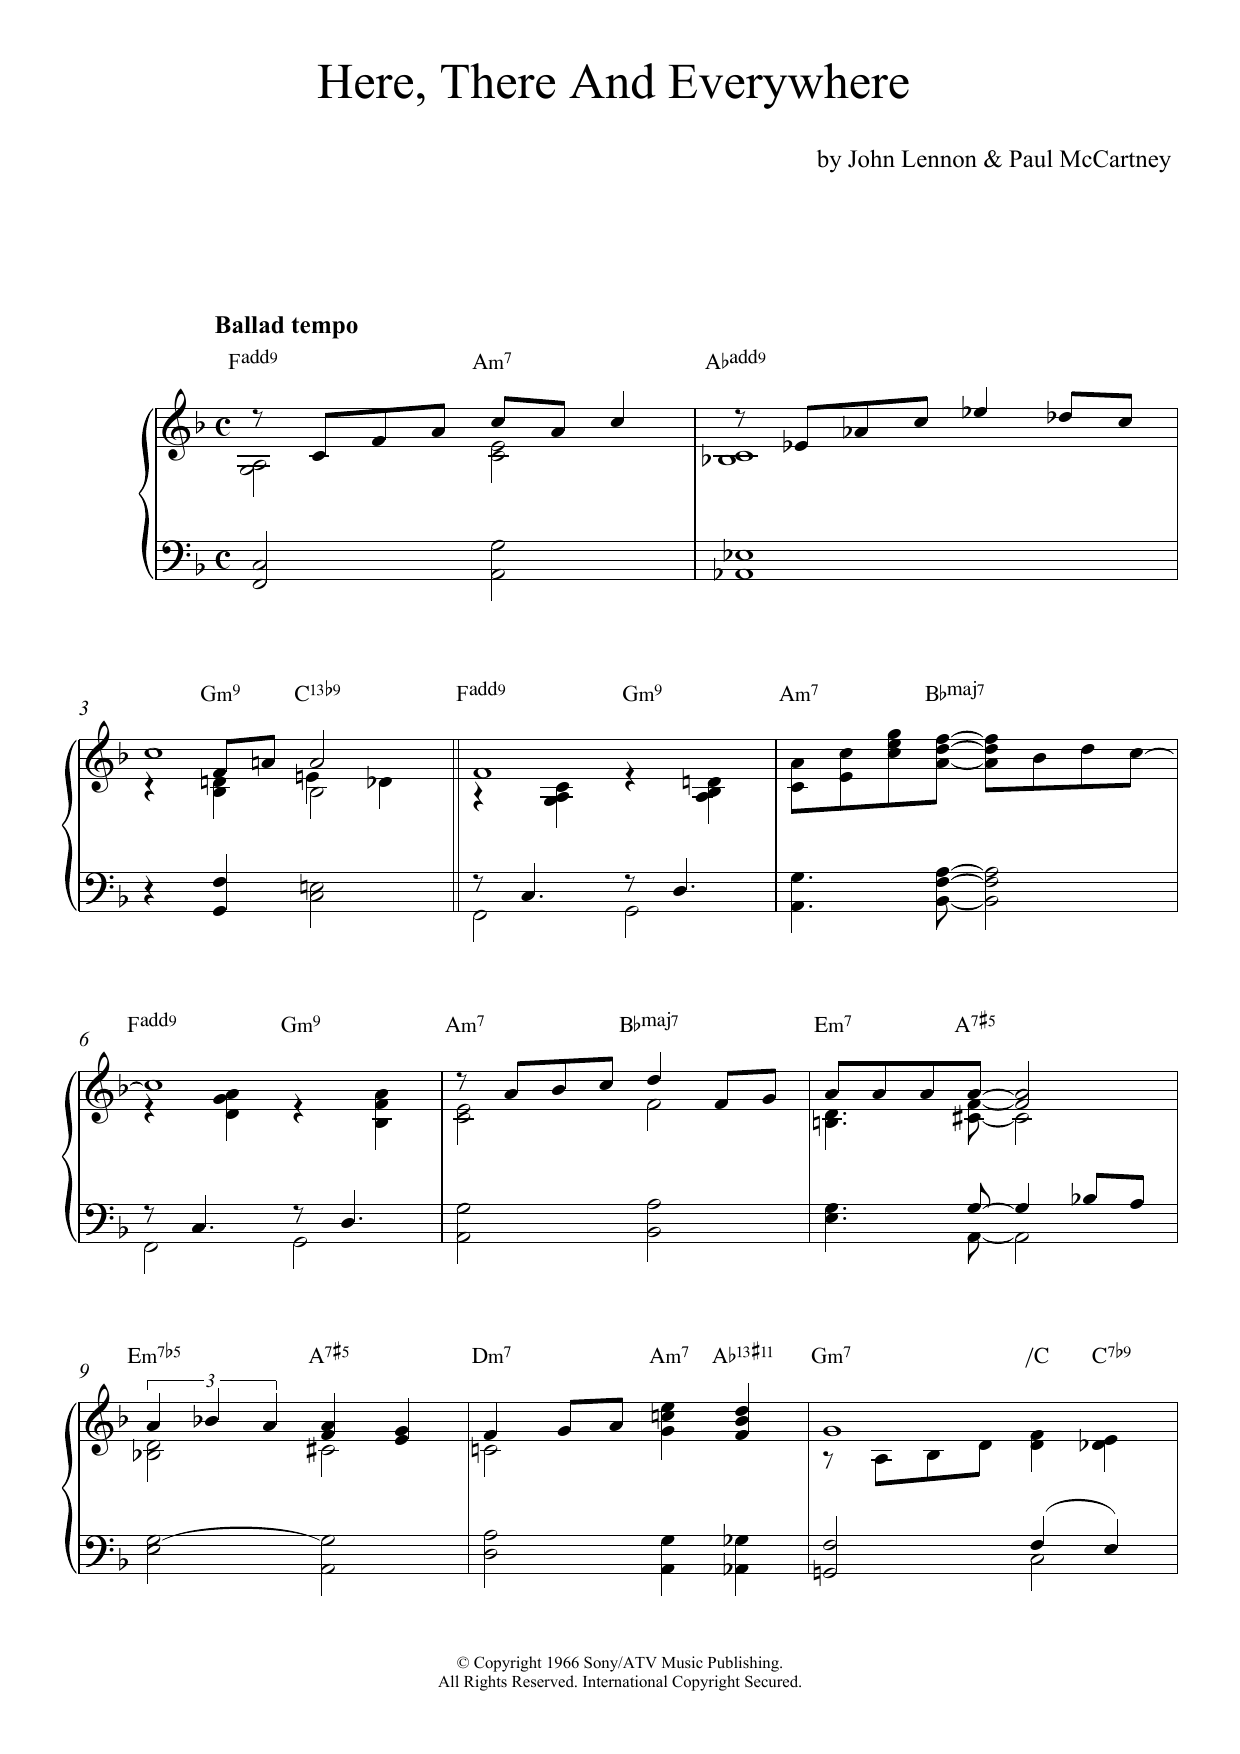 Here, There And Everywhere (jazz version) Sheet Music